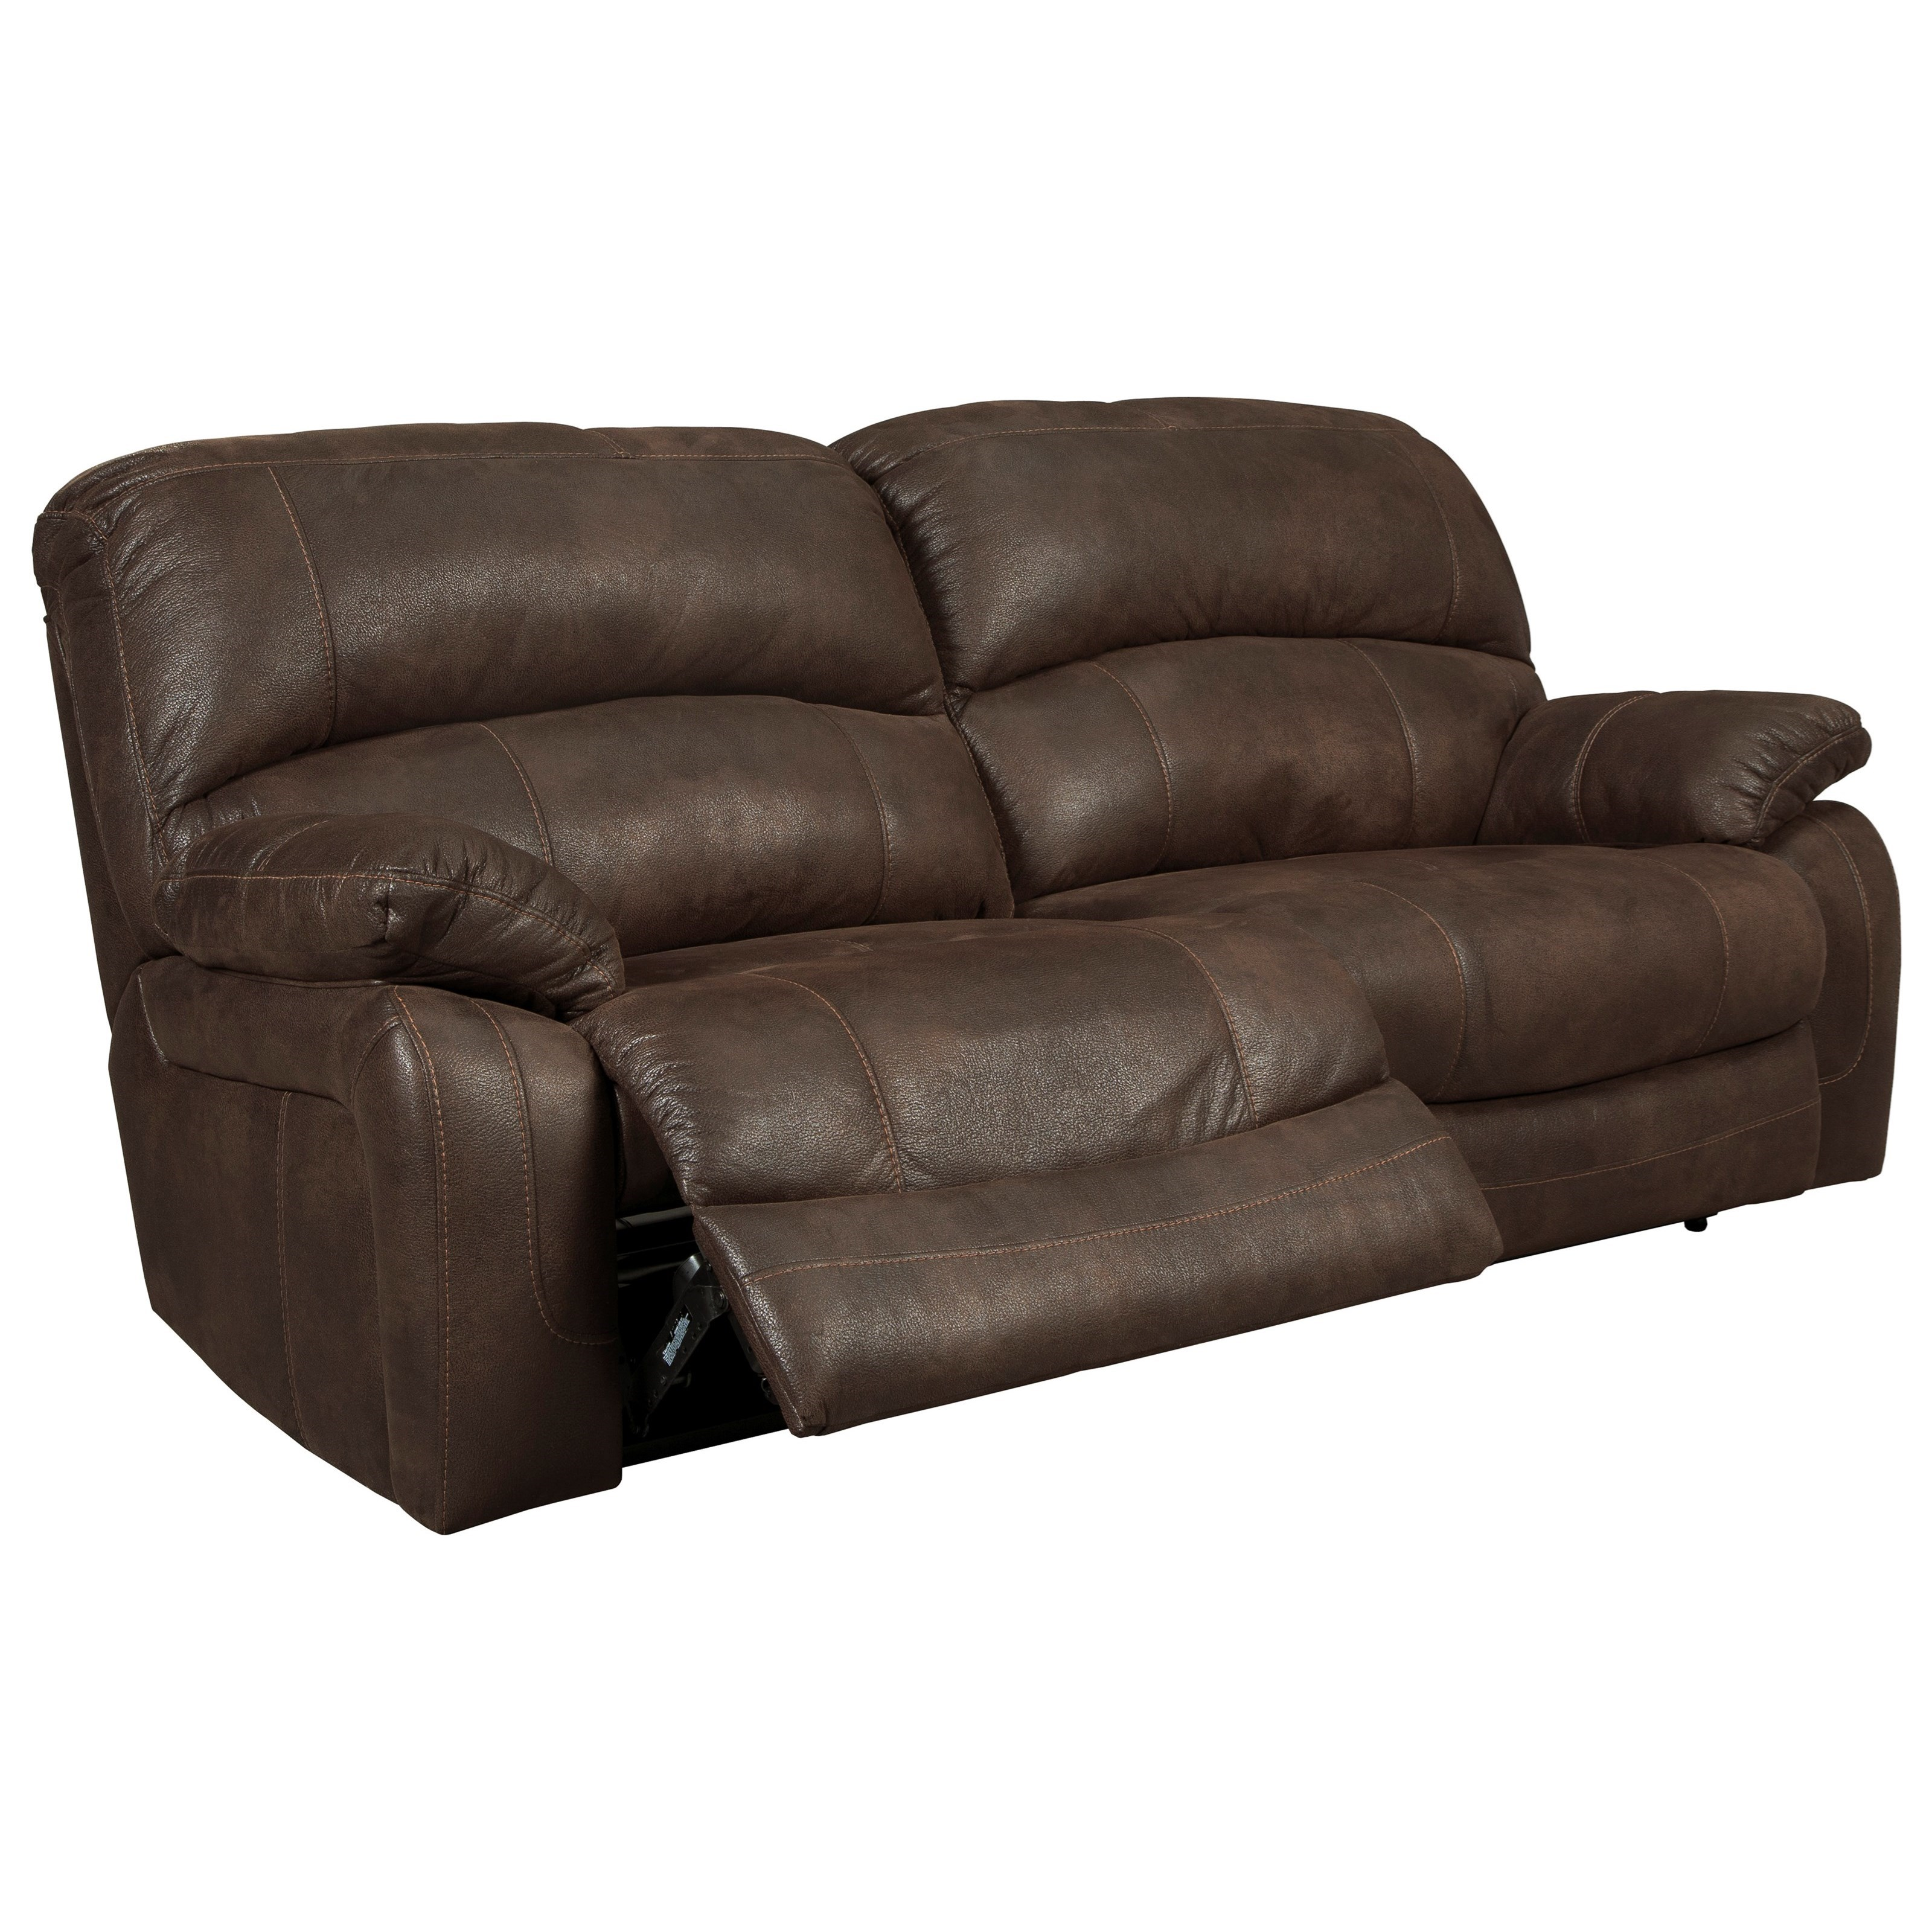 Signature Design By Ashley Zavier 4290147 2 Seat Reclining Power Sofa In Brown Faux Leather